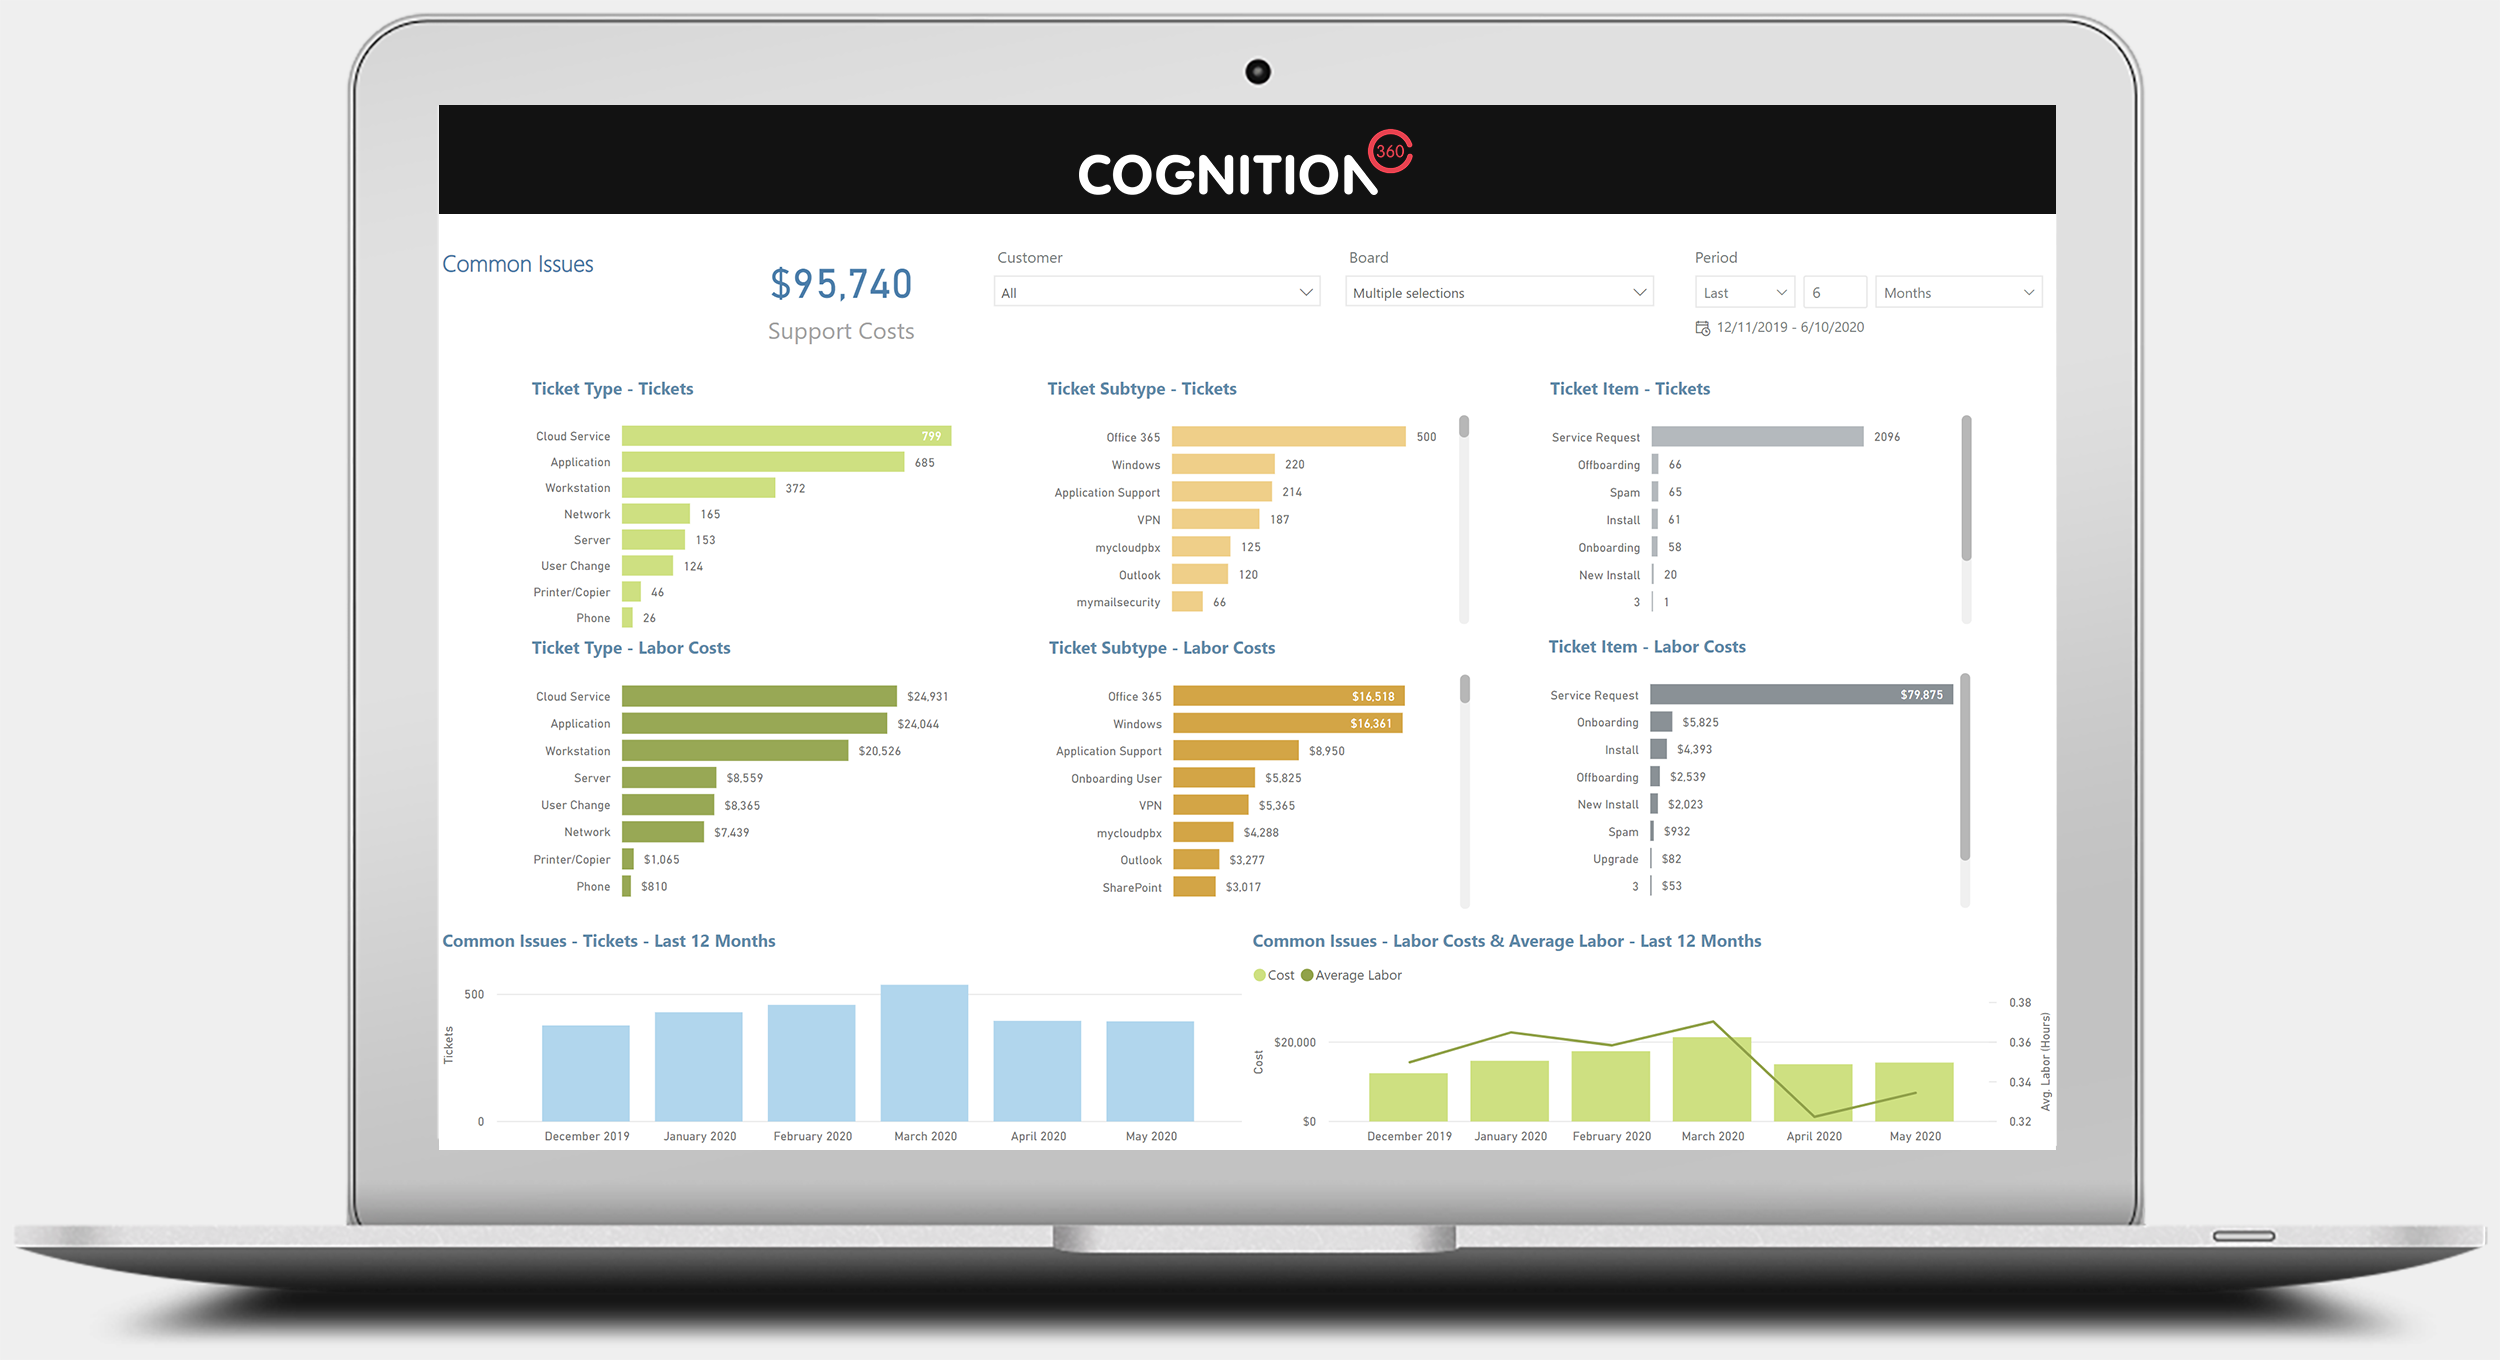 Cognition360 Ticket Type Costs Report view screen